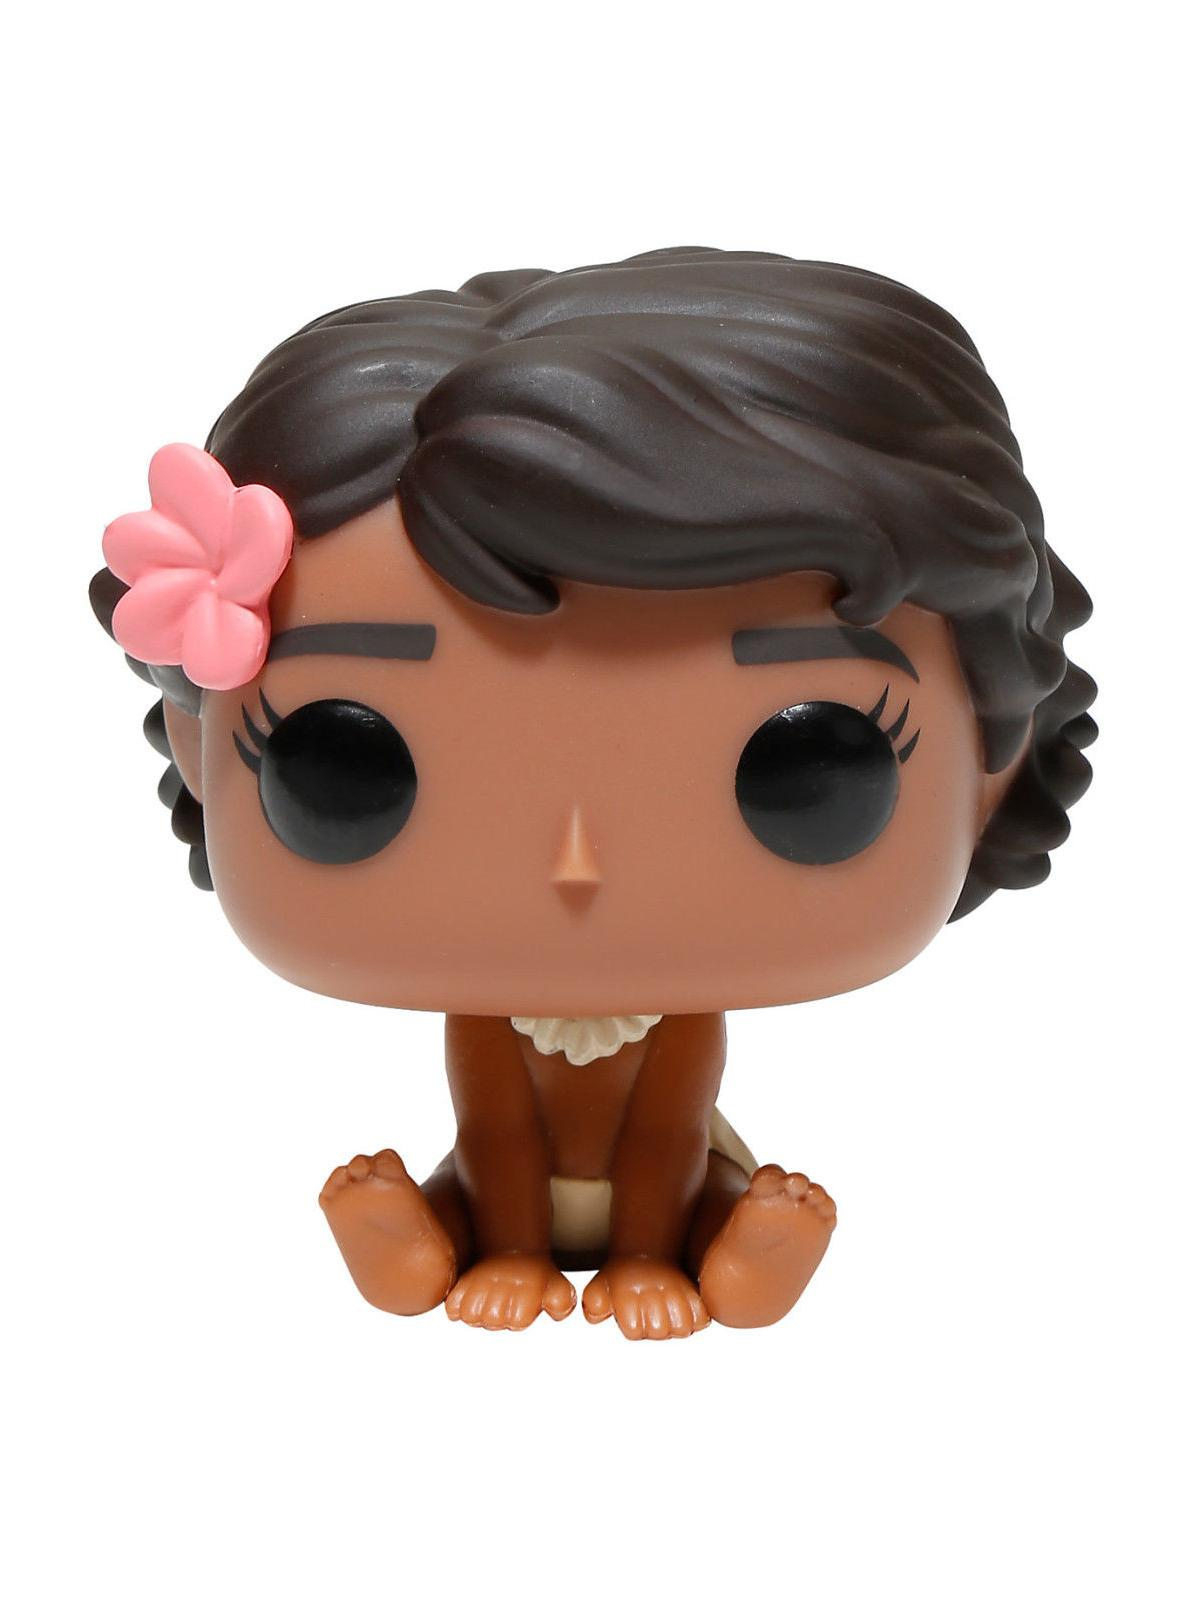 New Funko Pop Young Sitting Topic Toy